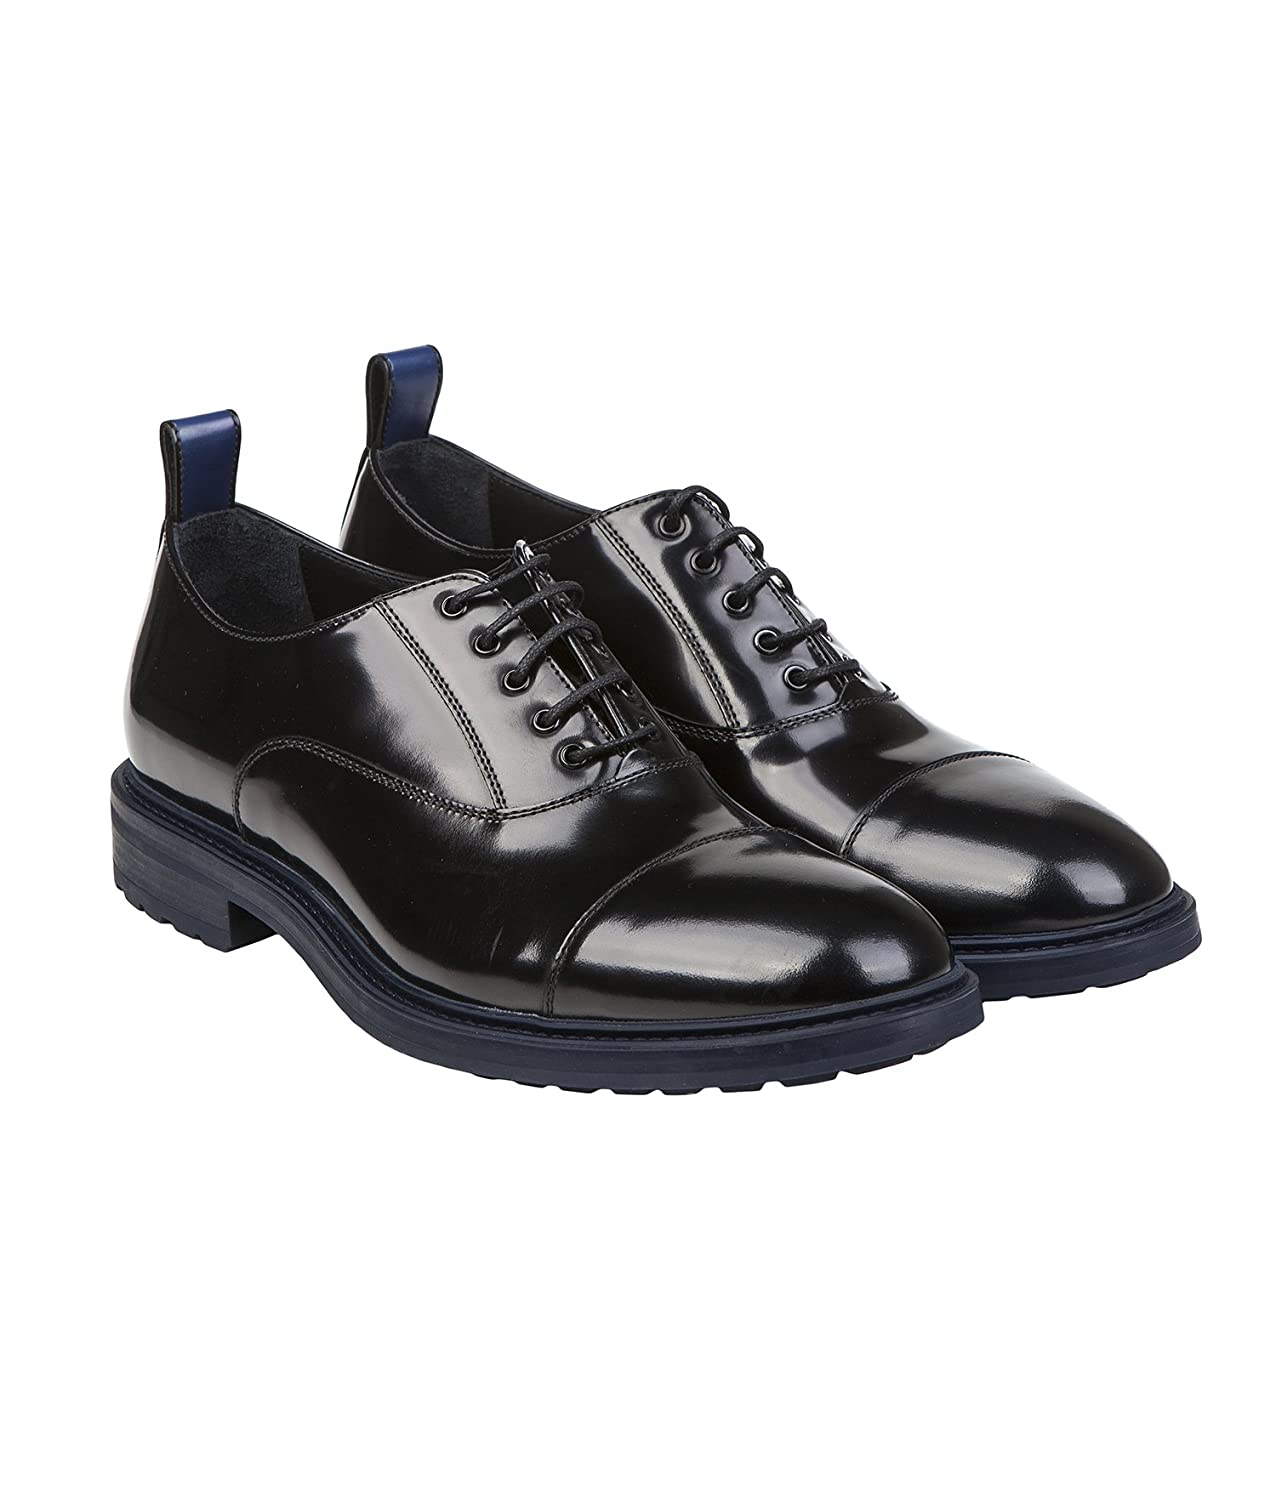 96a28080 Emporio Armani X4C464 XF136 Mens Lace Up Leather Shoes with Thick ...